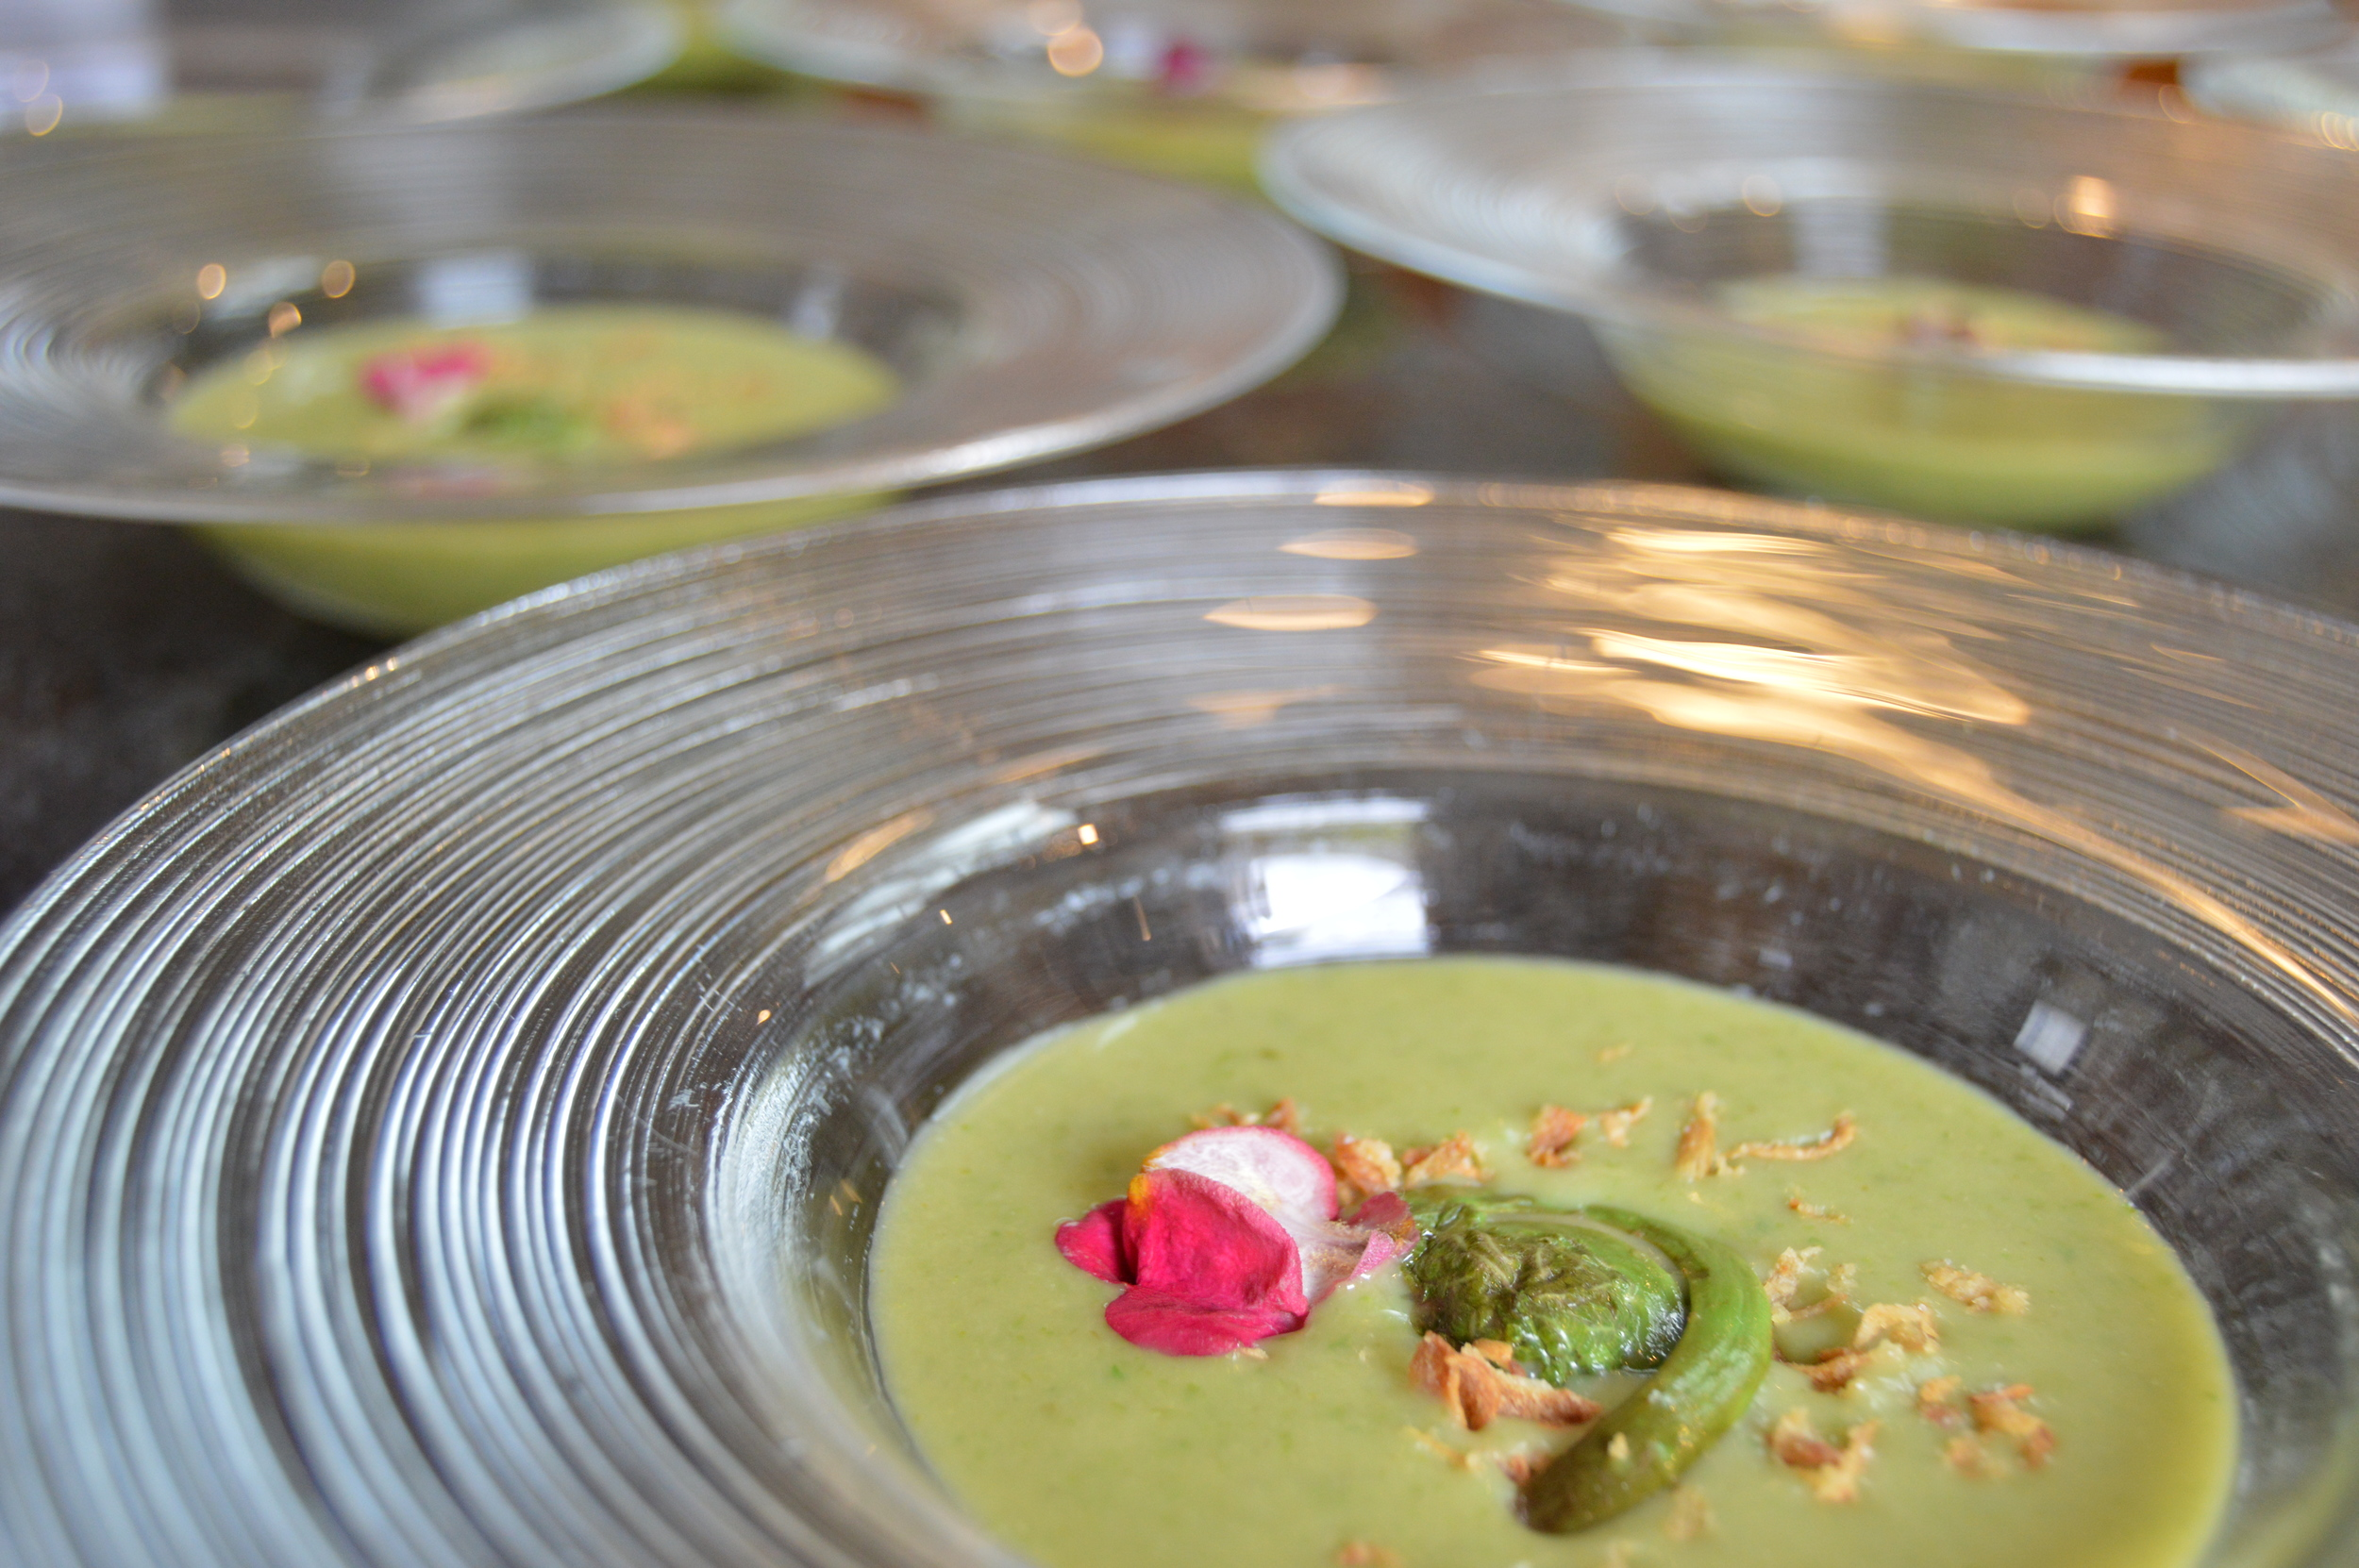 Chilled Asparagus Soup garnished with Crispy Onions, Fiddlehead Ferns, and Edible Flower Petals